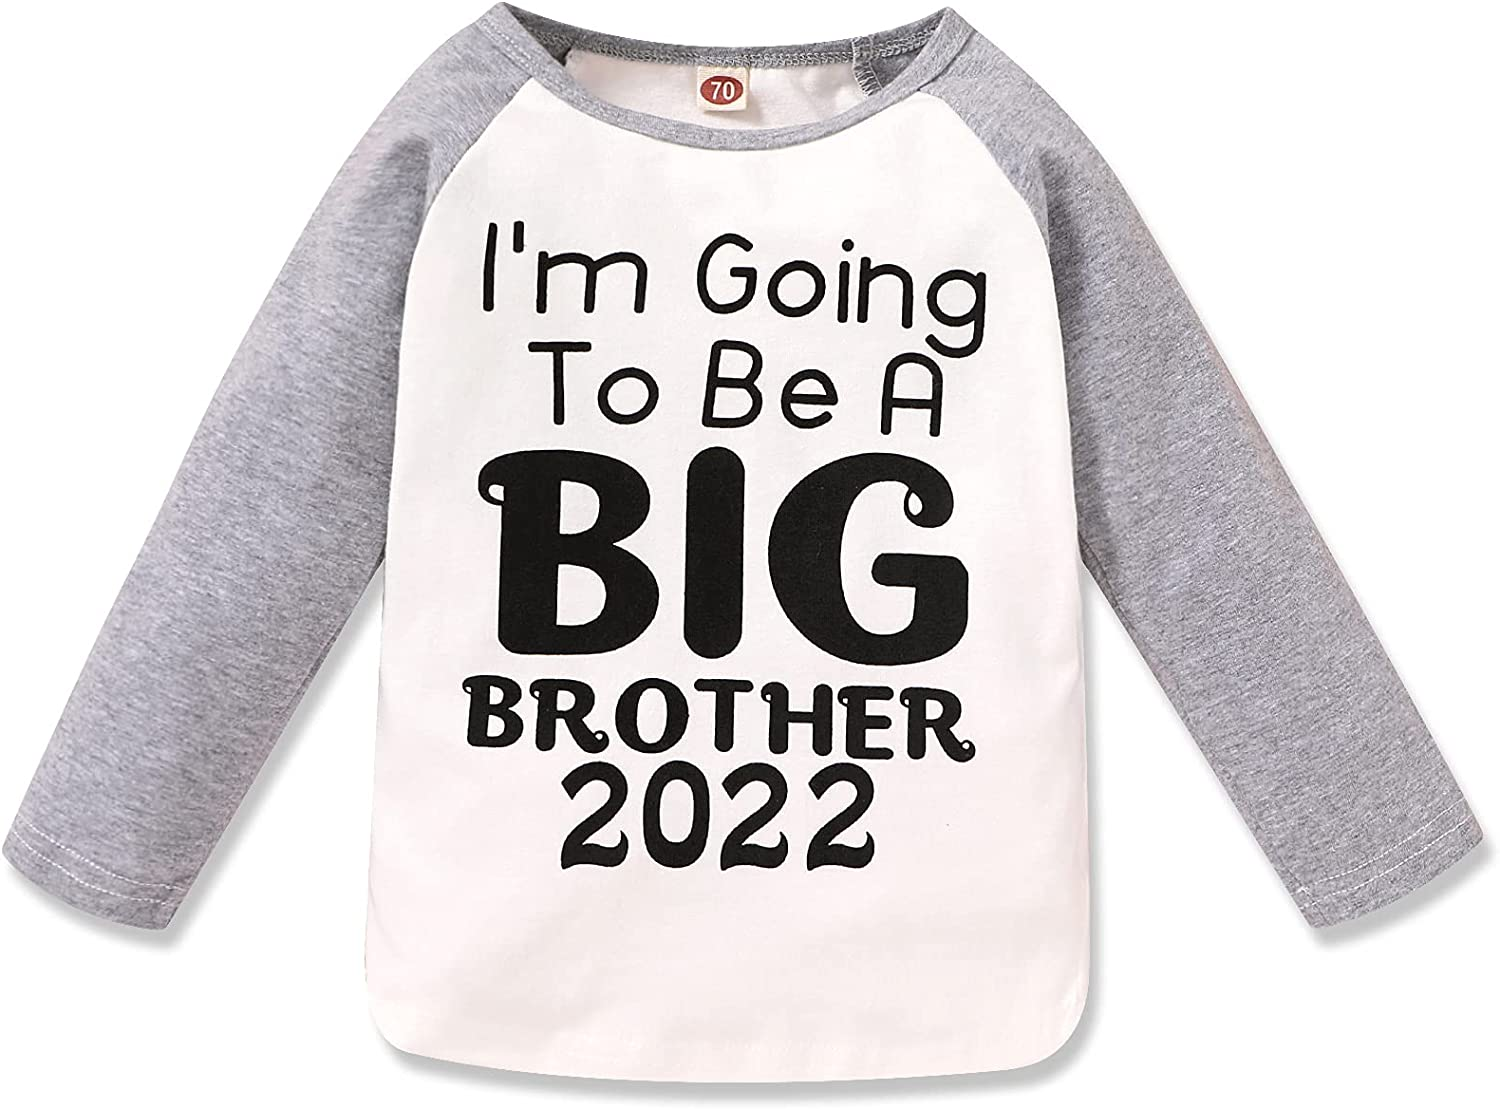 Toddler Kids Baby Boy Tee I'm Going to Be A Big Brother 2022 Shirt Long Sleeve T-Shirt Tops